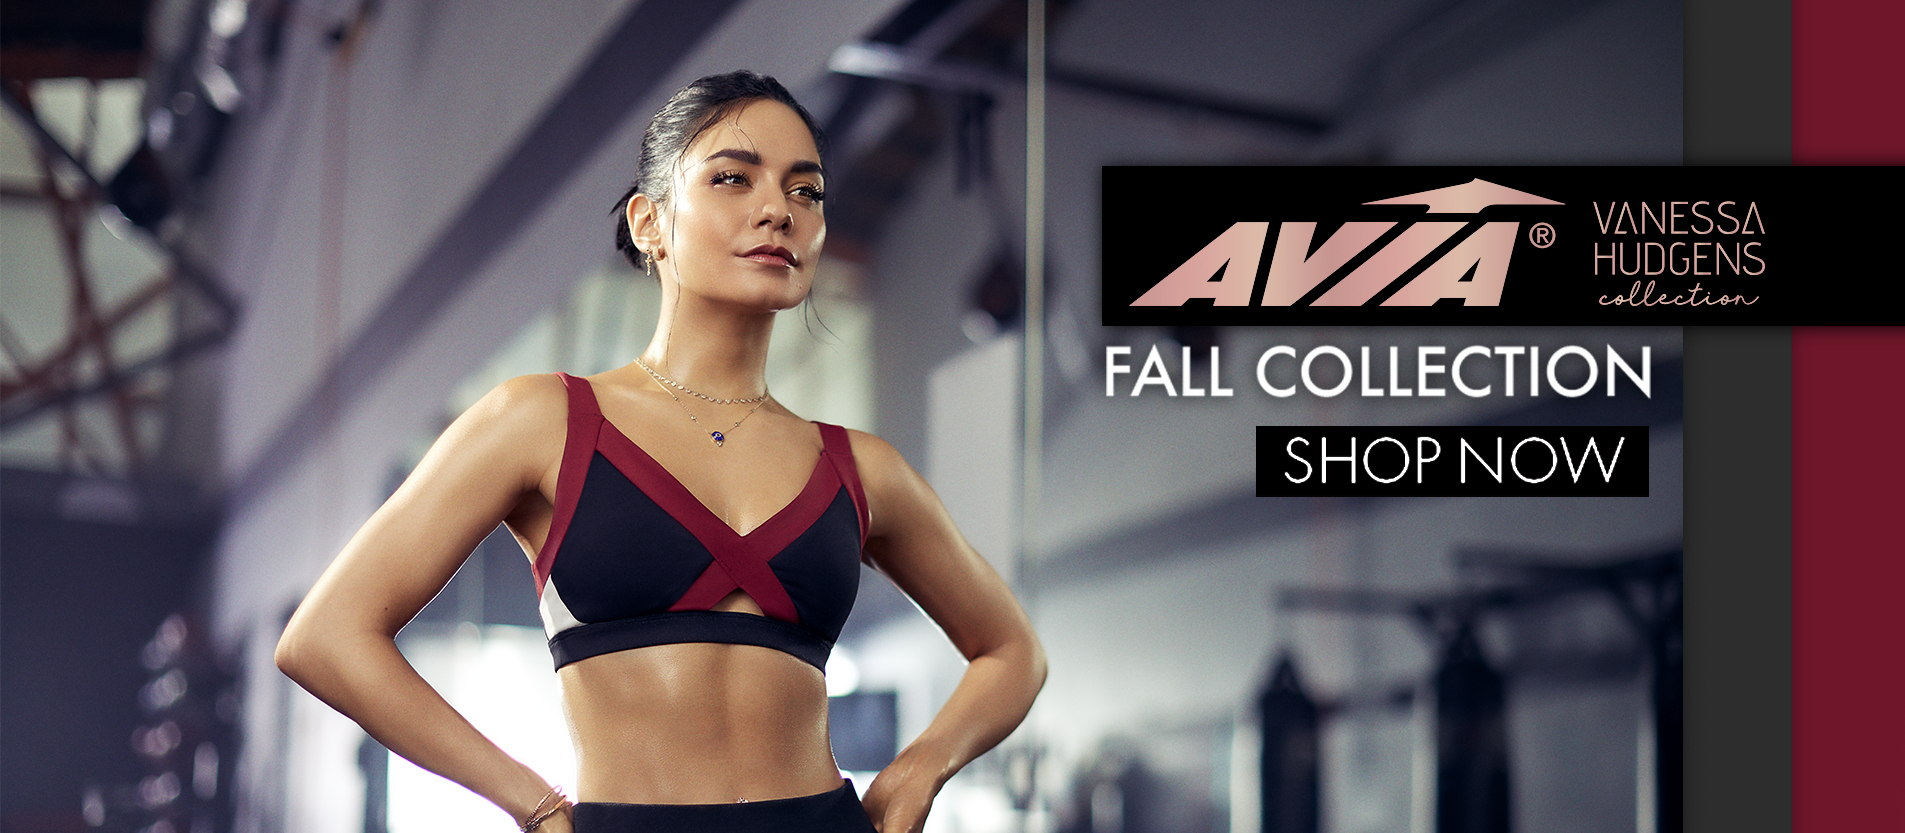 New Launch for Fall/Holiday, the Avia Vanessa Hudgens Apparel Collection, designed by Vanessa Hudgens for Avia. Tops, bottoms, Jackets, Leggings, Pants, Bras, Tanks, Shirts and more Avia Vanessa Hudgens clothing! Pair with the perfect pair of Avia running shoes to the perfect sneakers to walk in.